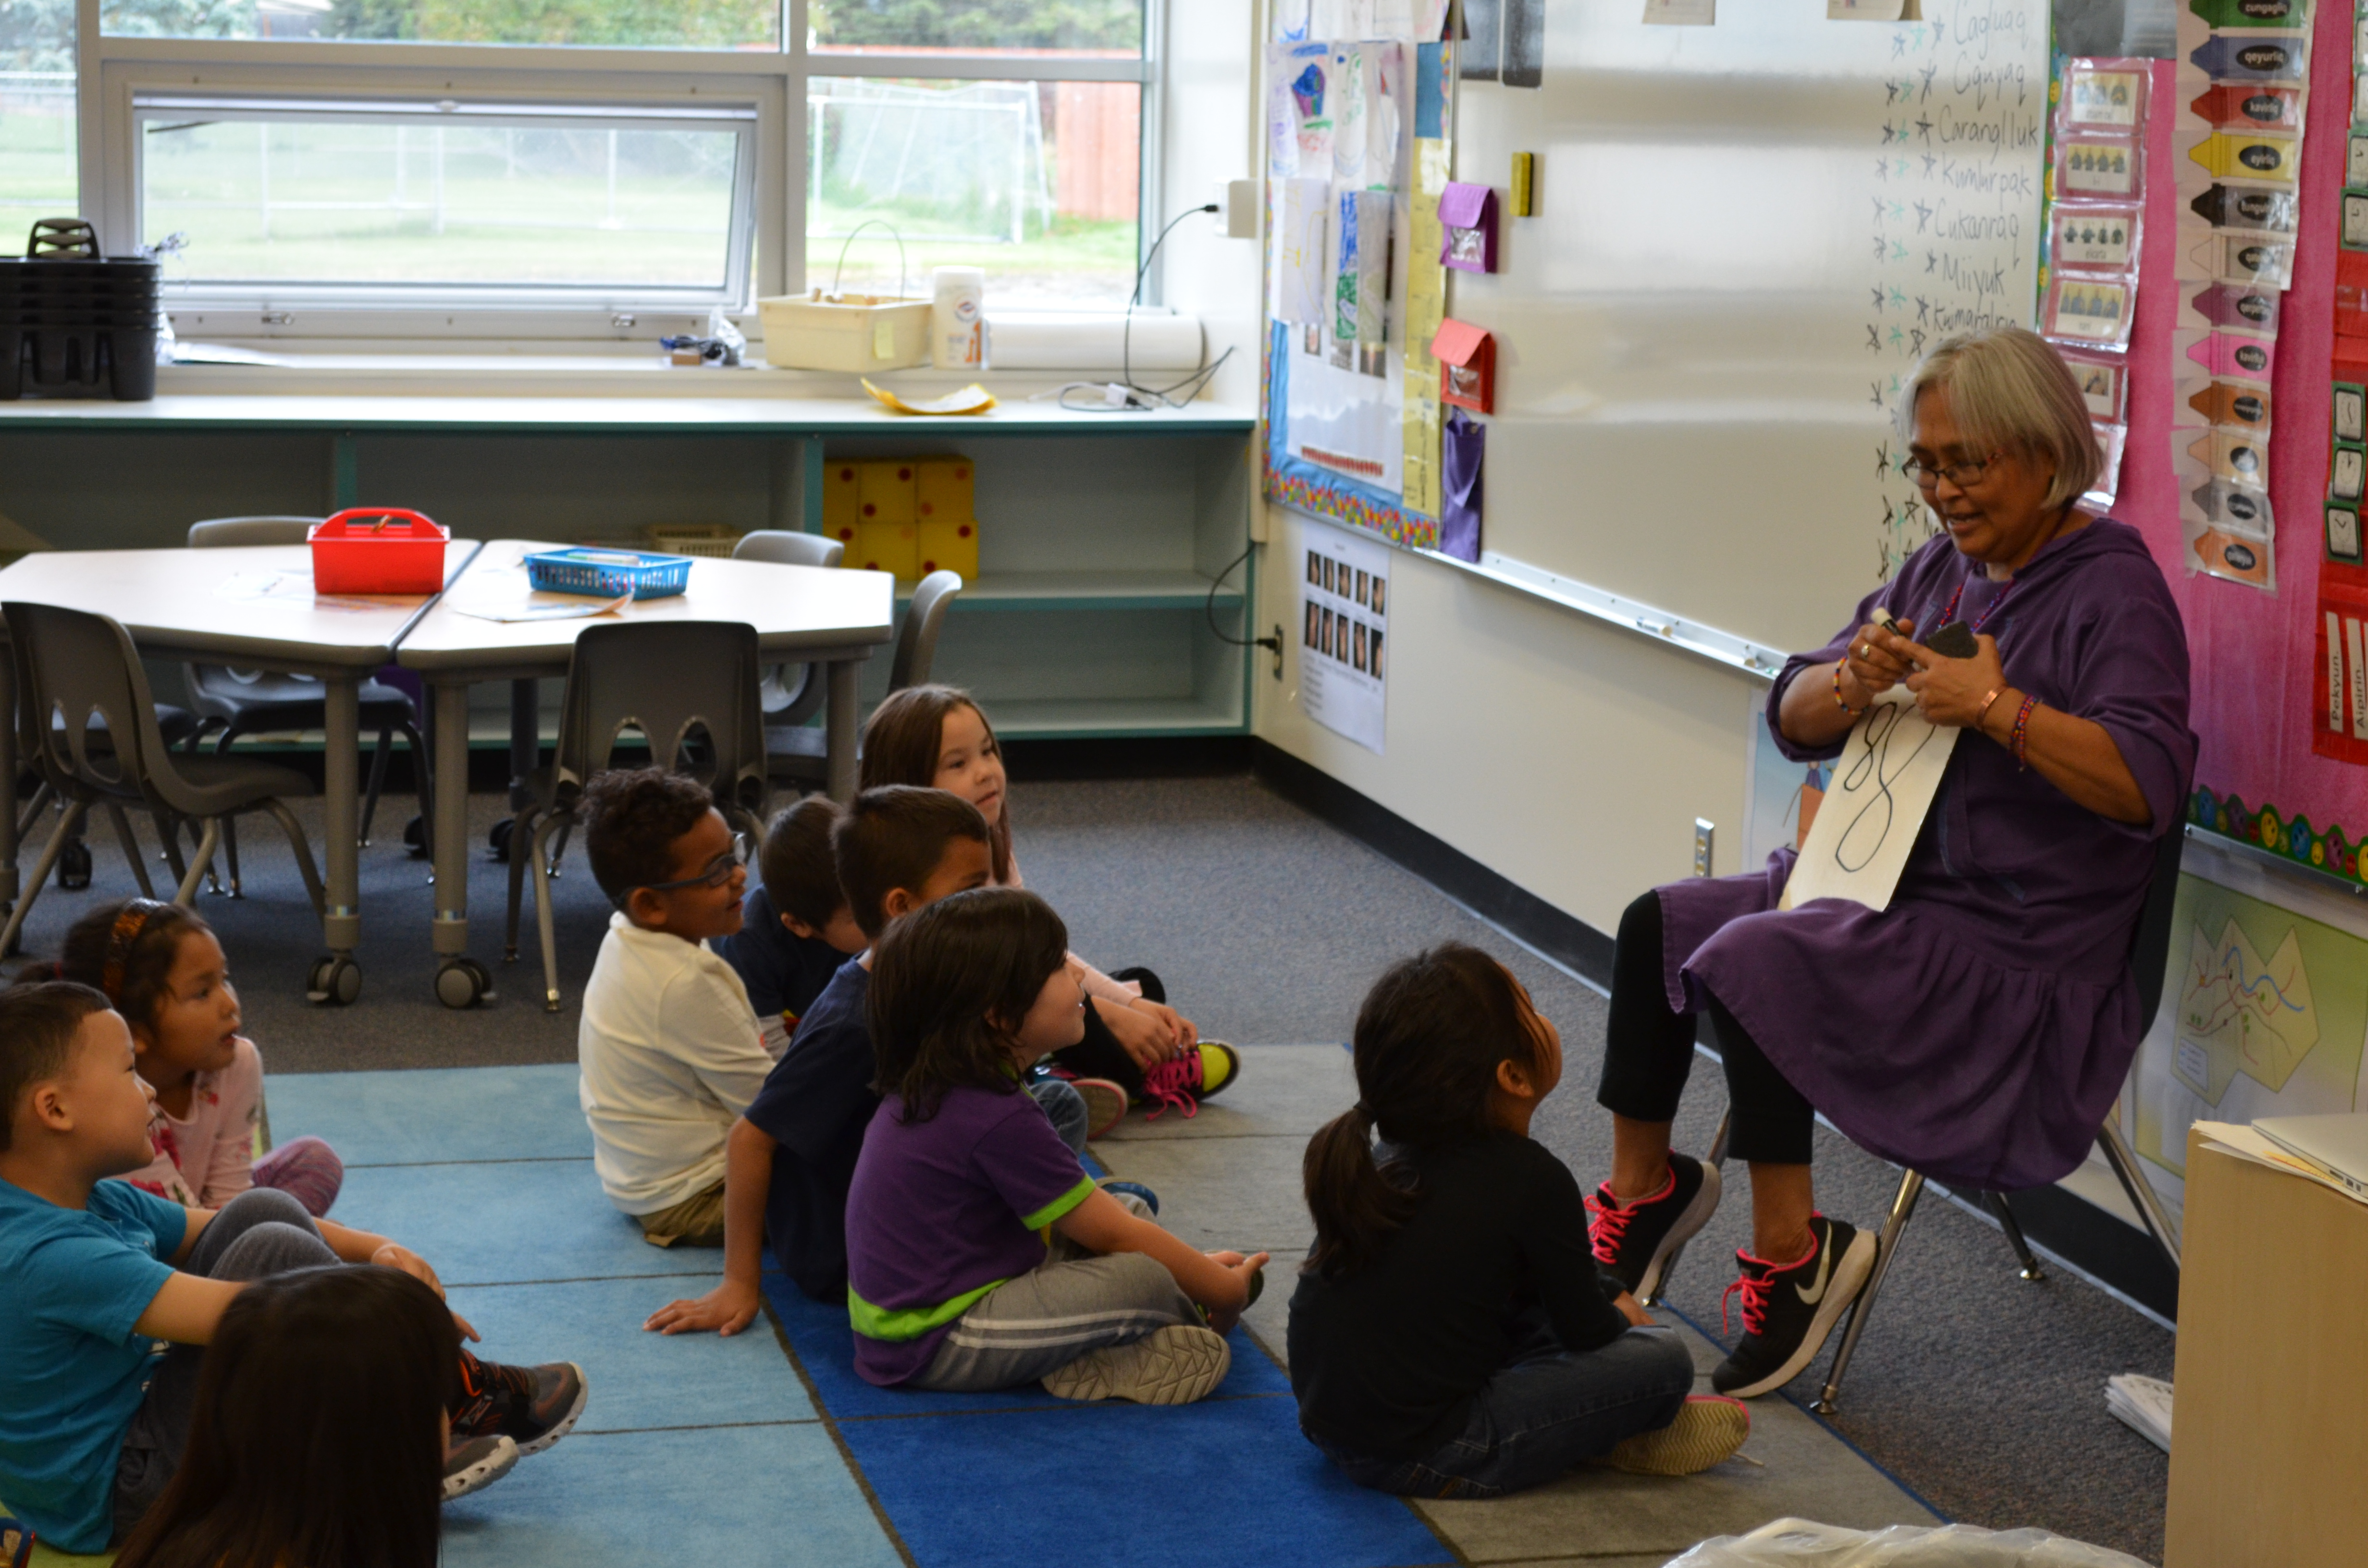 A teacher in the Yup'ik immersion program guides a group of kindergarten students seated on mats.